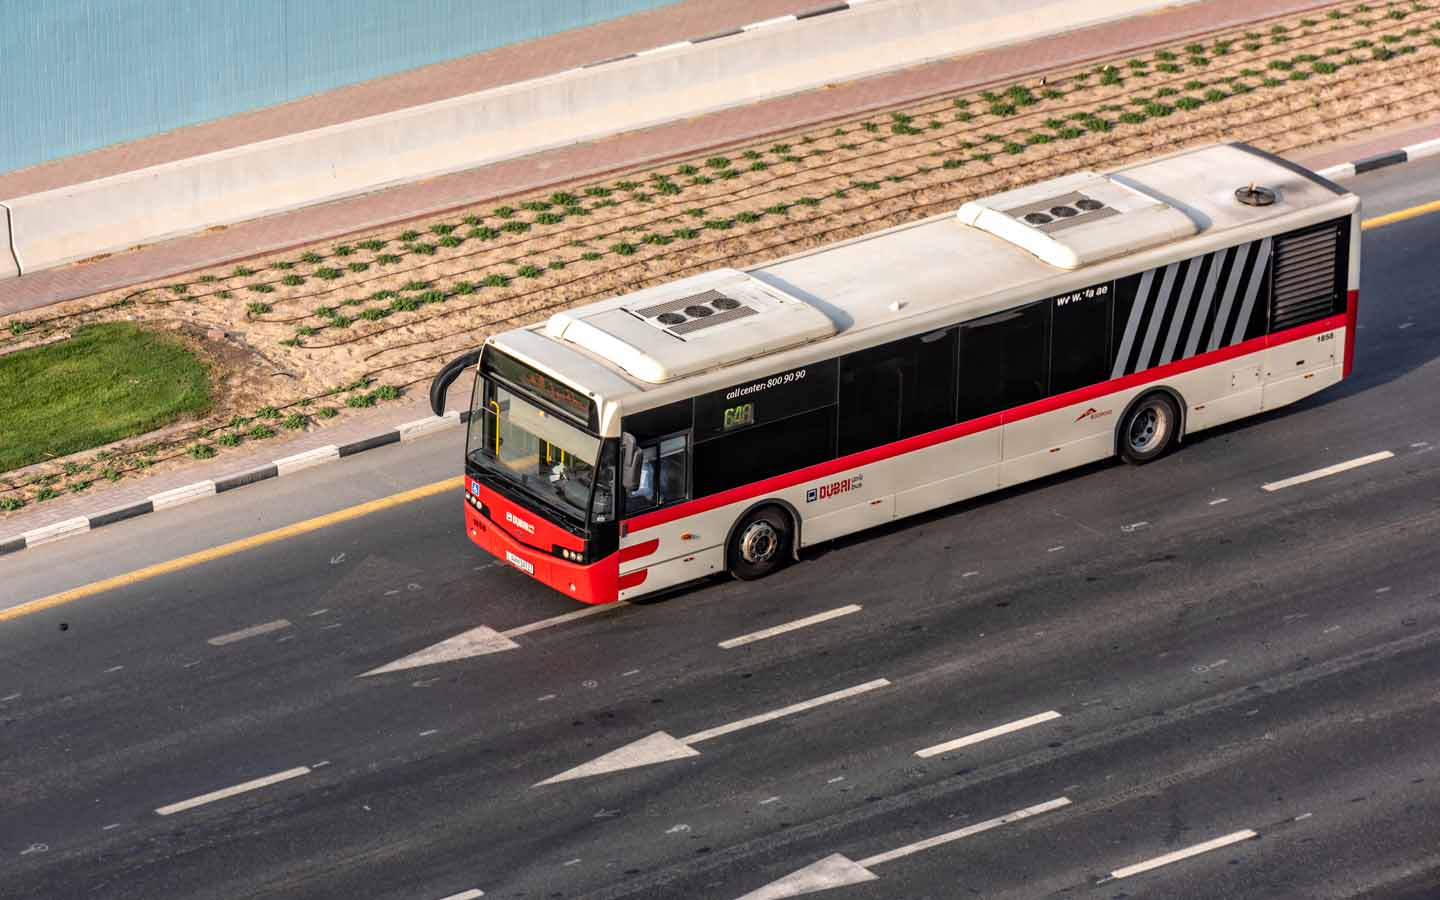 Bus on a road in Dubai